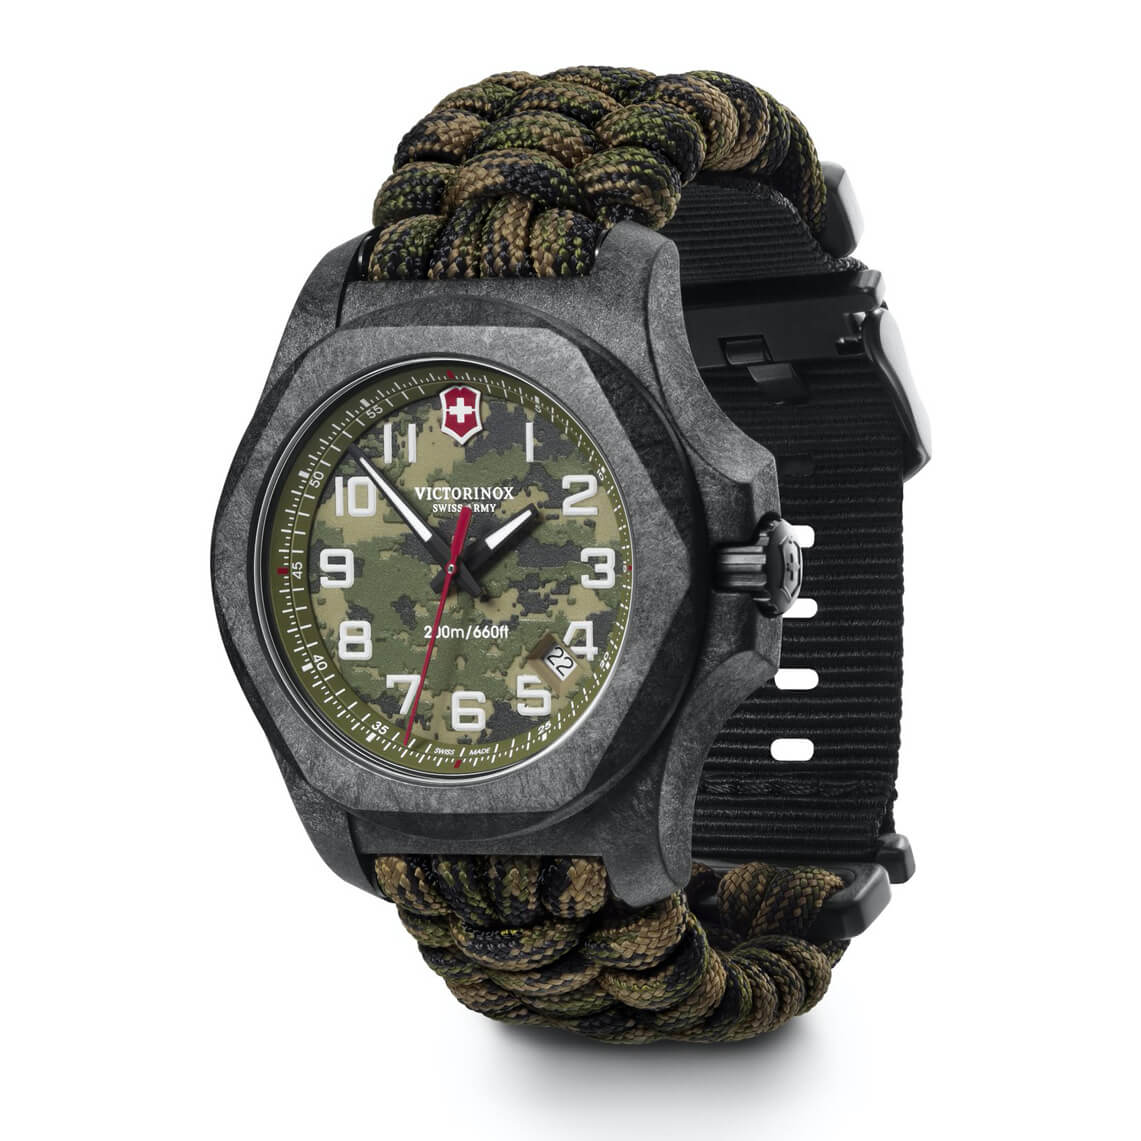 Victorinox - Swiss Army I.N.O.X Carbon Limited Edition Military Watch